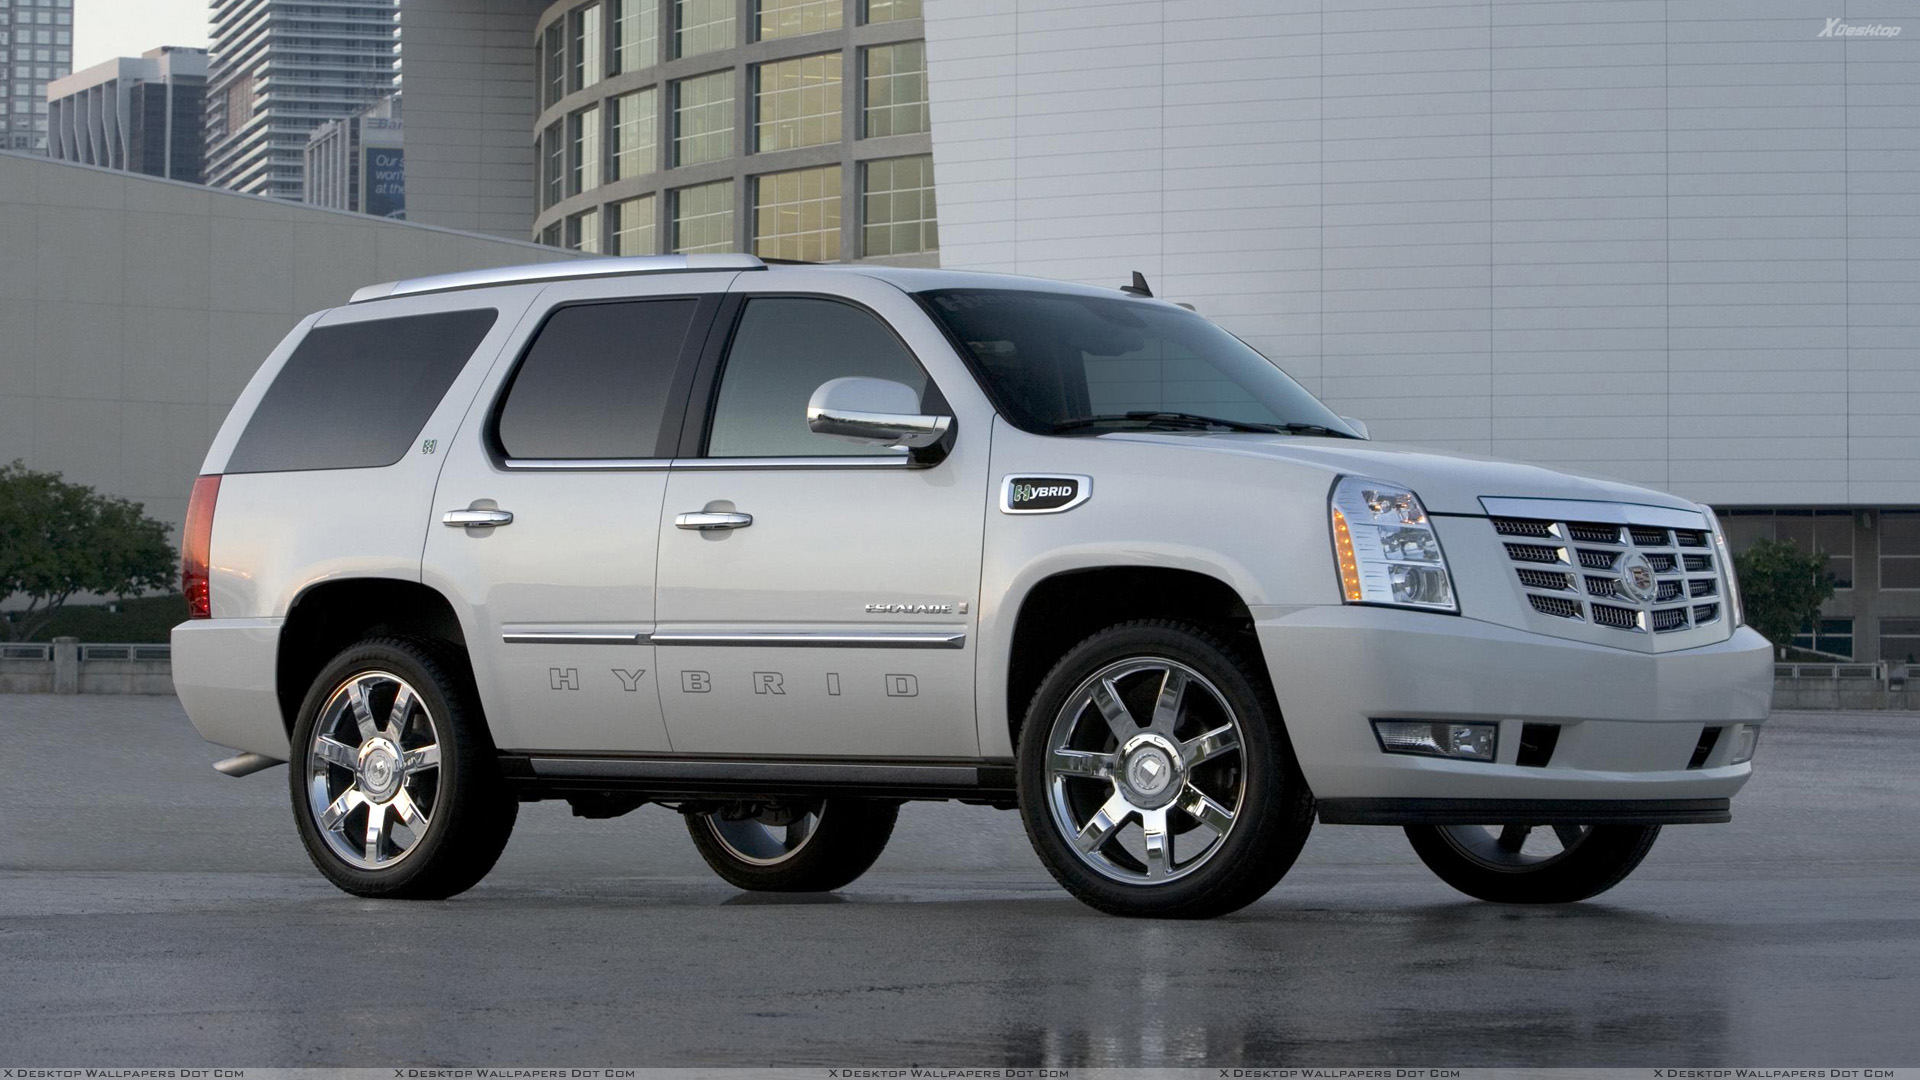 cadillac escalade wallpapers photos images in hd. Black Bedroom Furniture Sets. Home Design Ideas